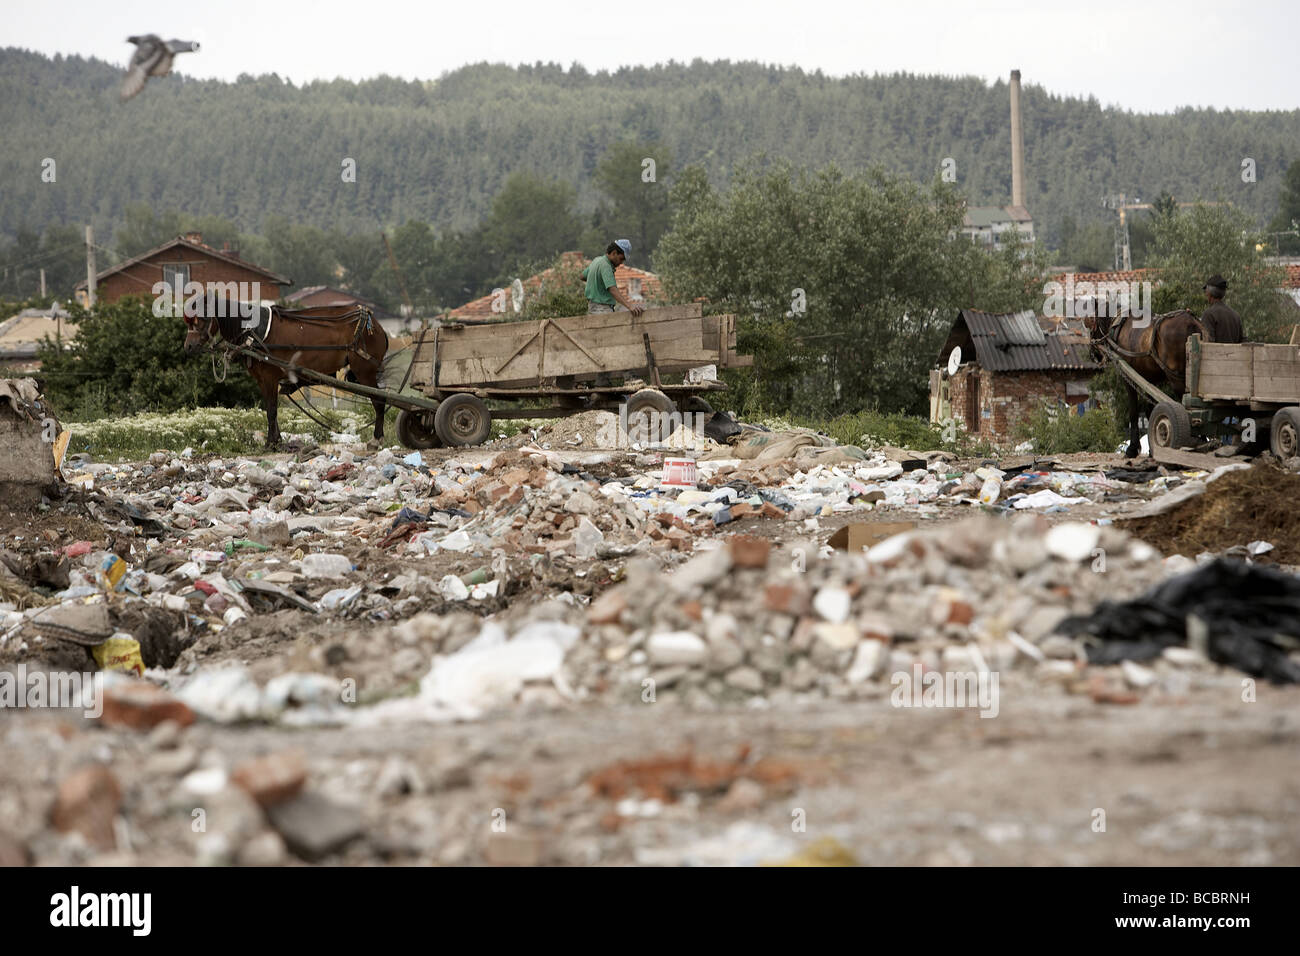 Scavenging for rubbish using a horse and cart Samokov Bulgaria - Stock Image